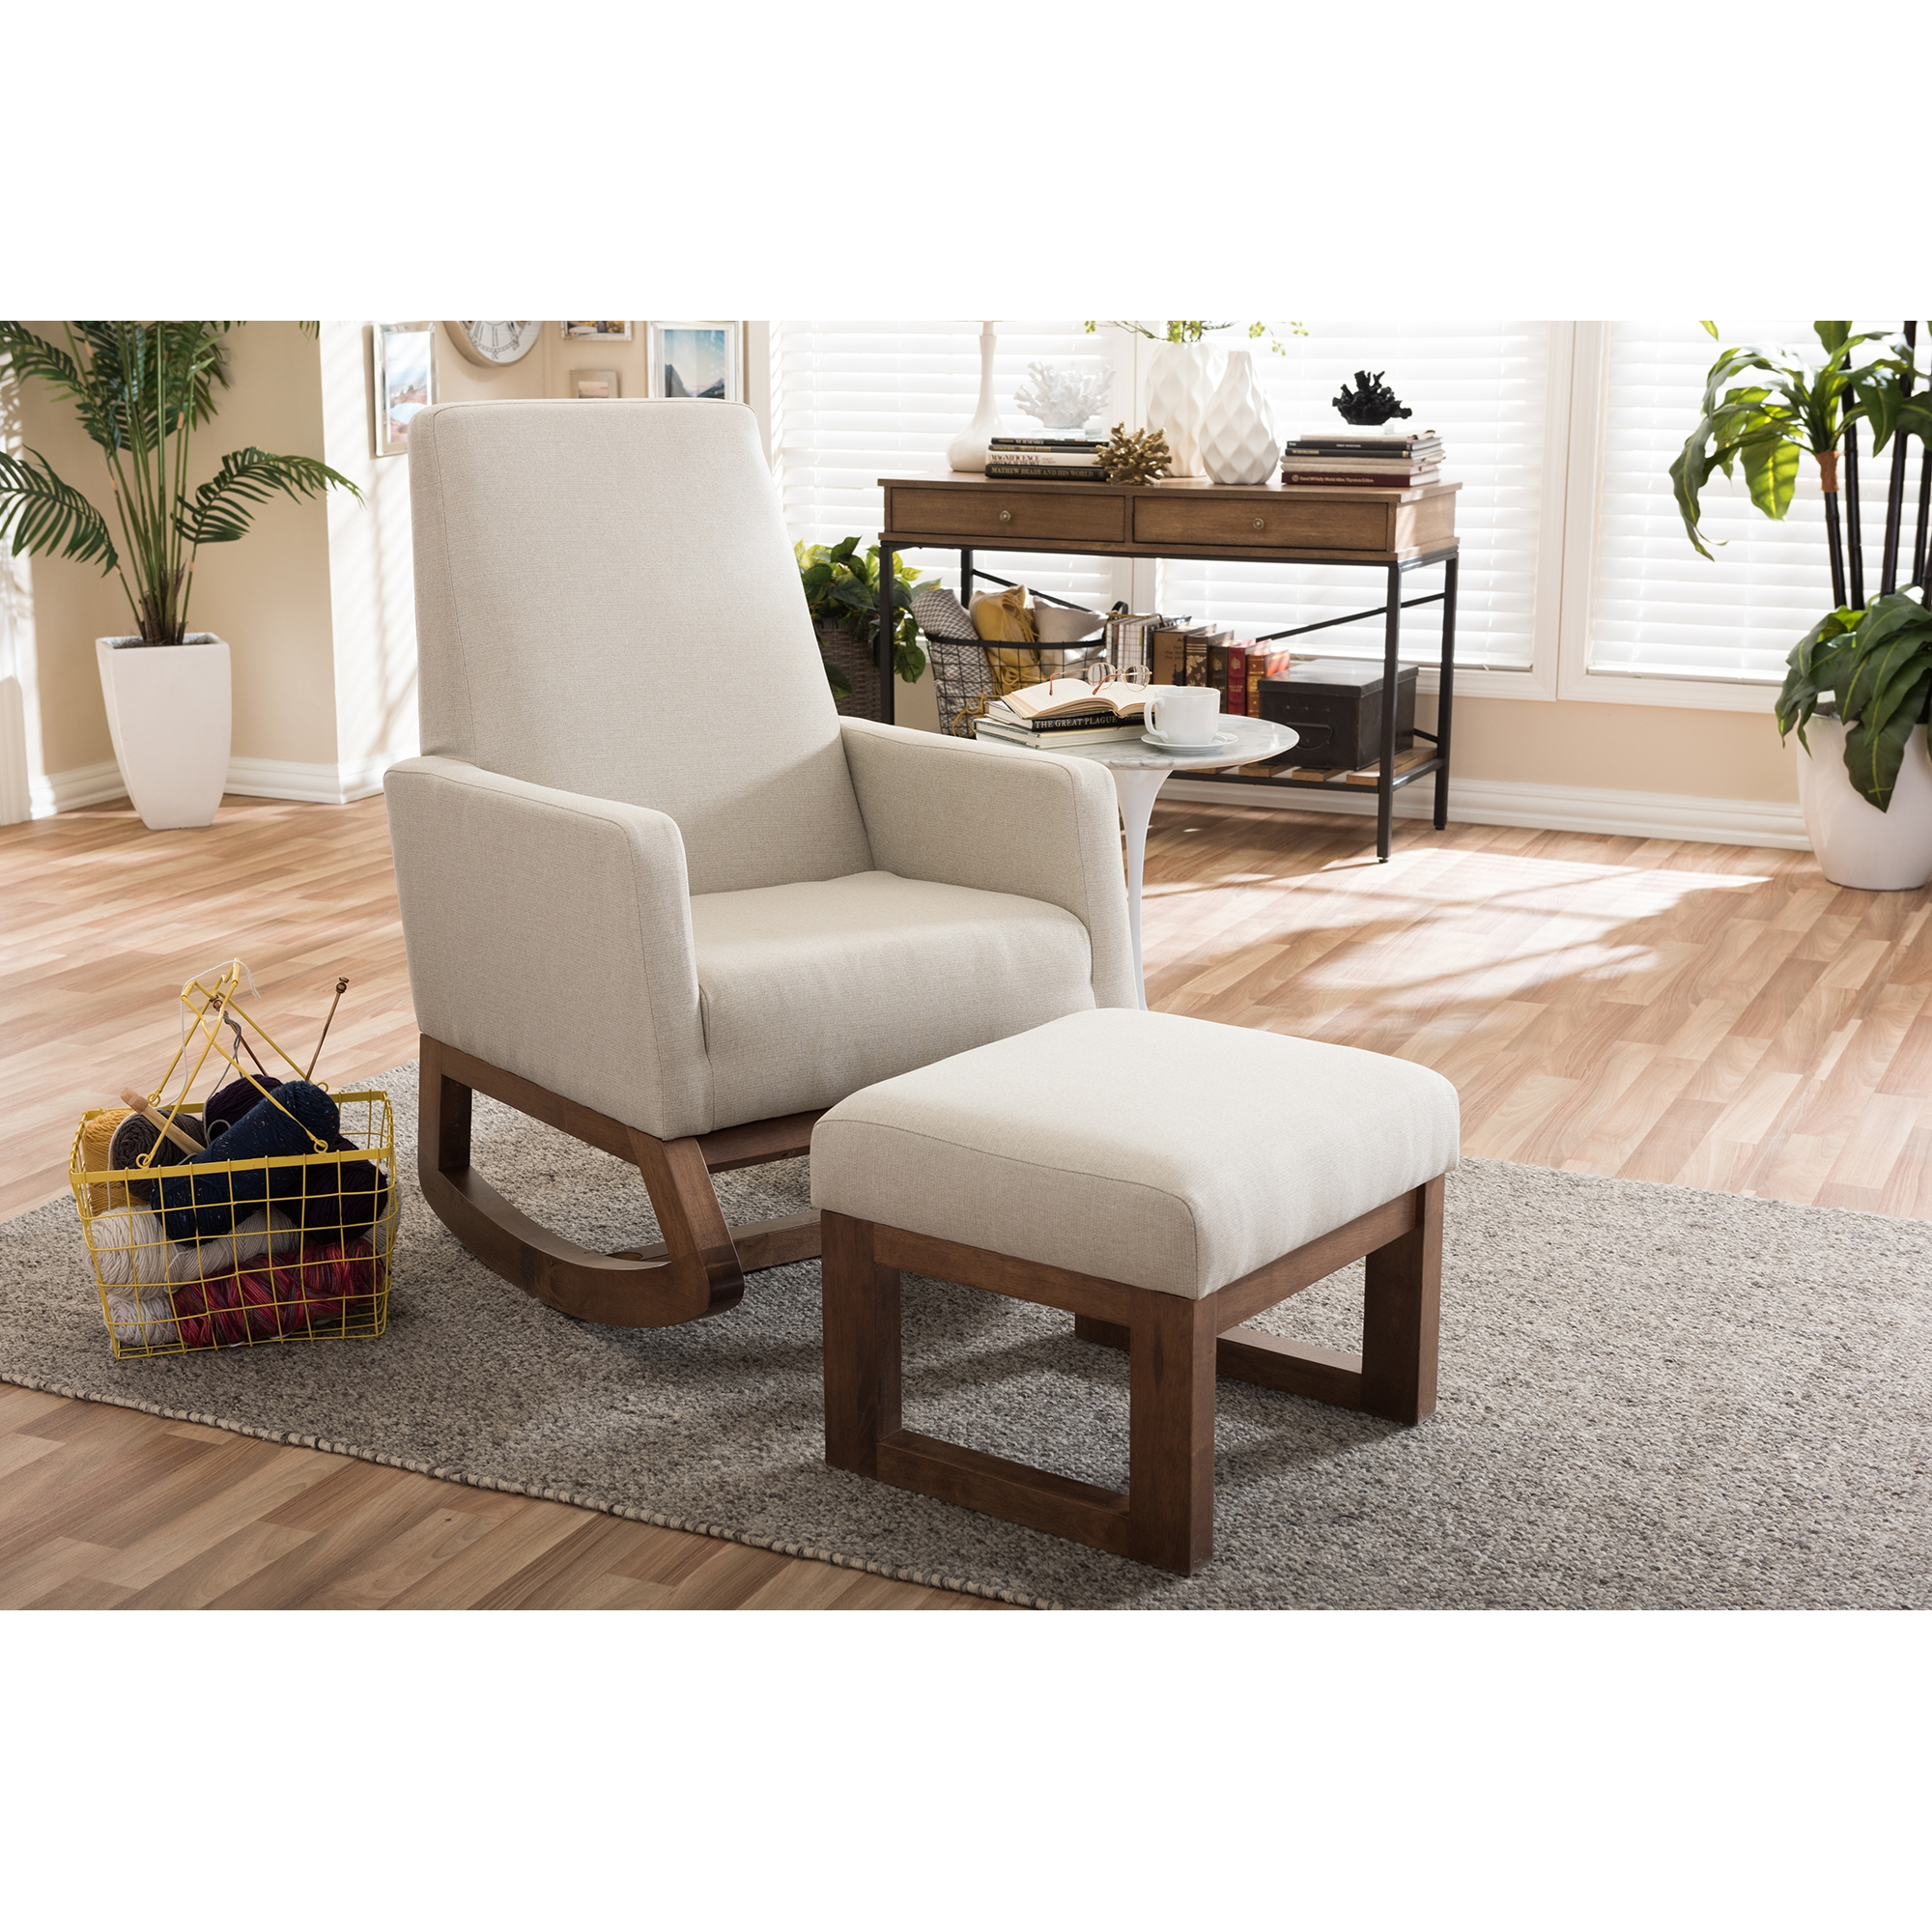 baxton studio yashiya midcentury retro modern light beige fabric upholstered rocking chair and ottoman